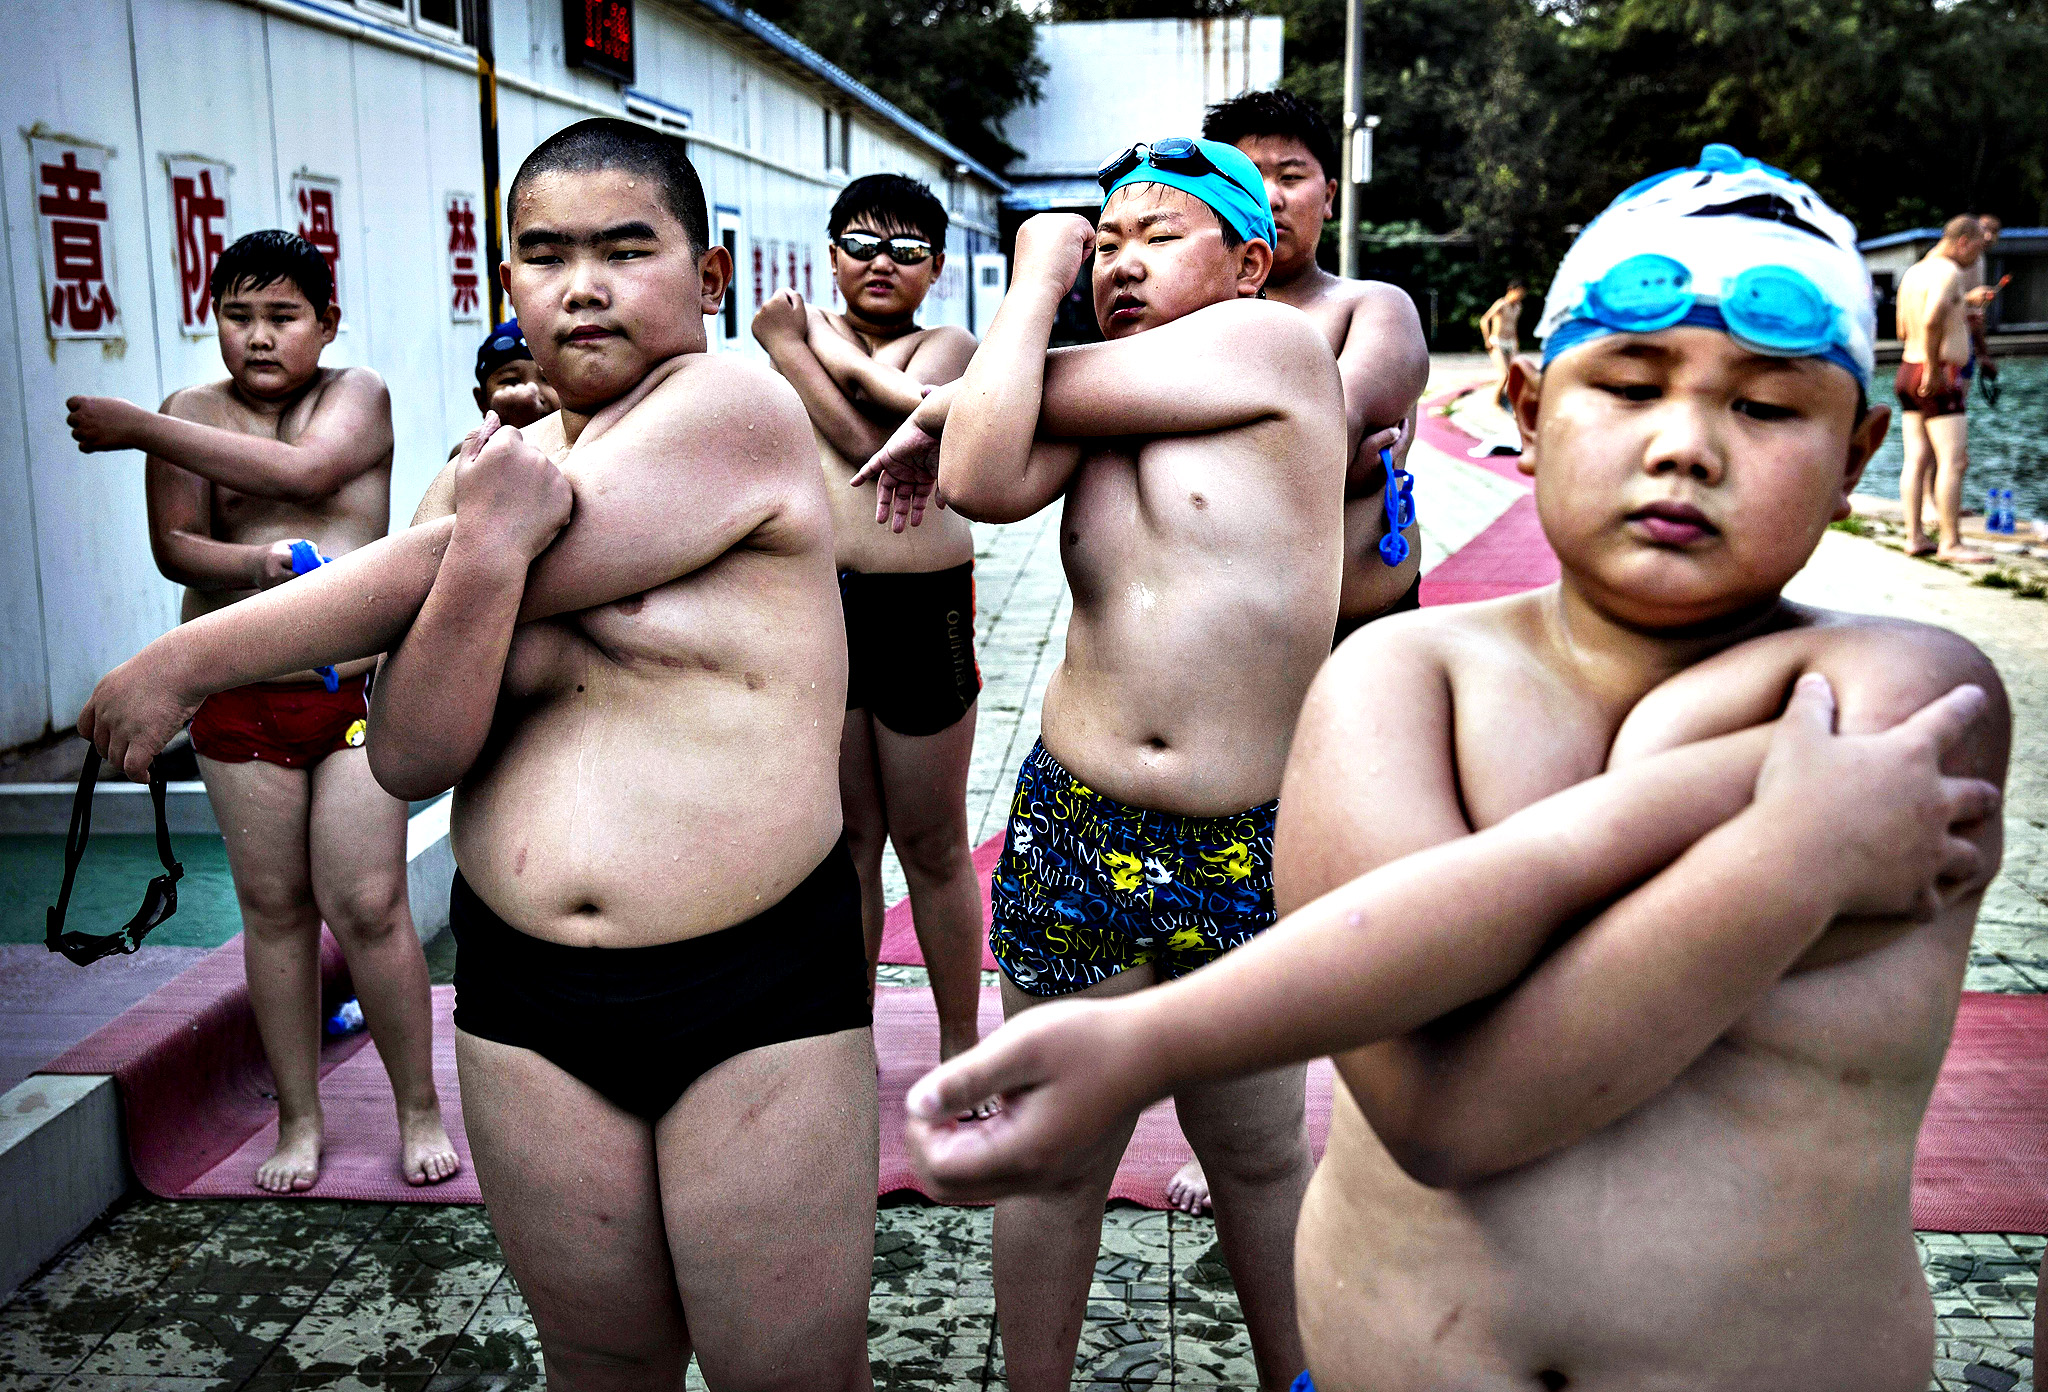 Overweight Chinese students stretch after swimming during training at a camp held for overweight children in Beijing, China